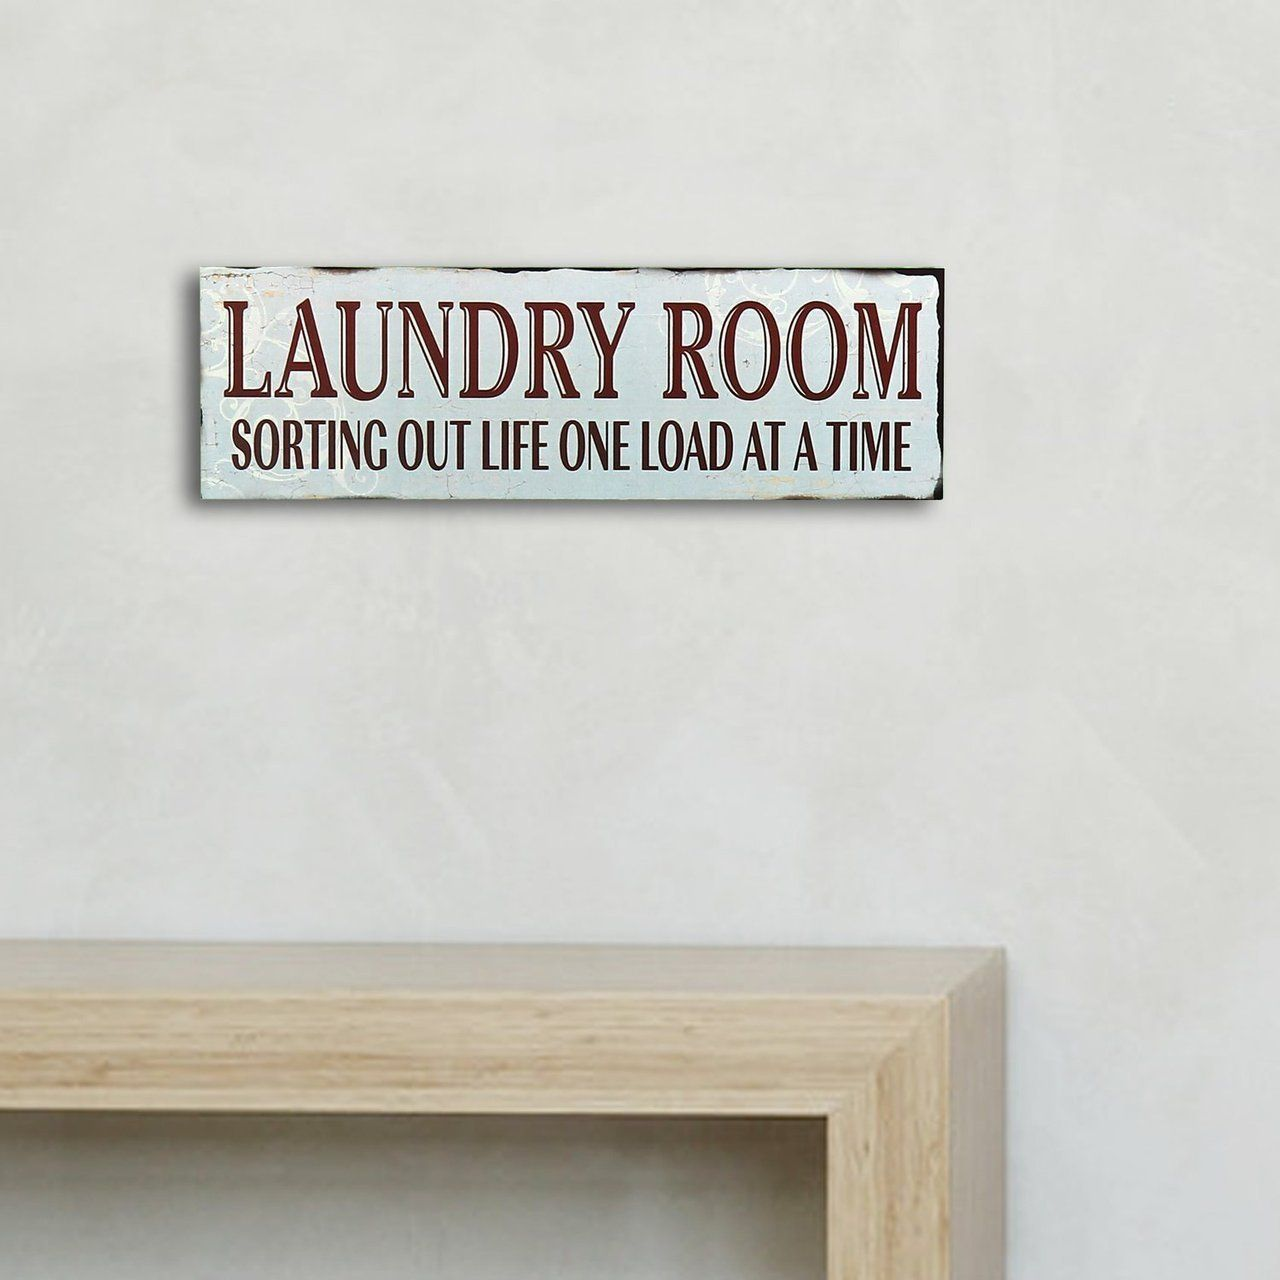 Laundry Room Wall Signs Laundry Room Sign  Laundry Room Fantasy  Pinterest  Room Signs